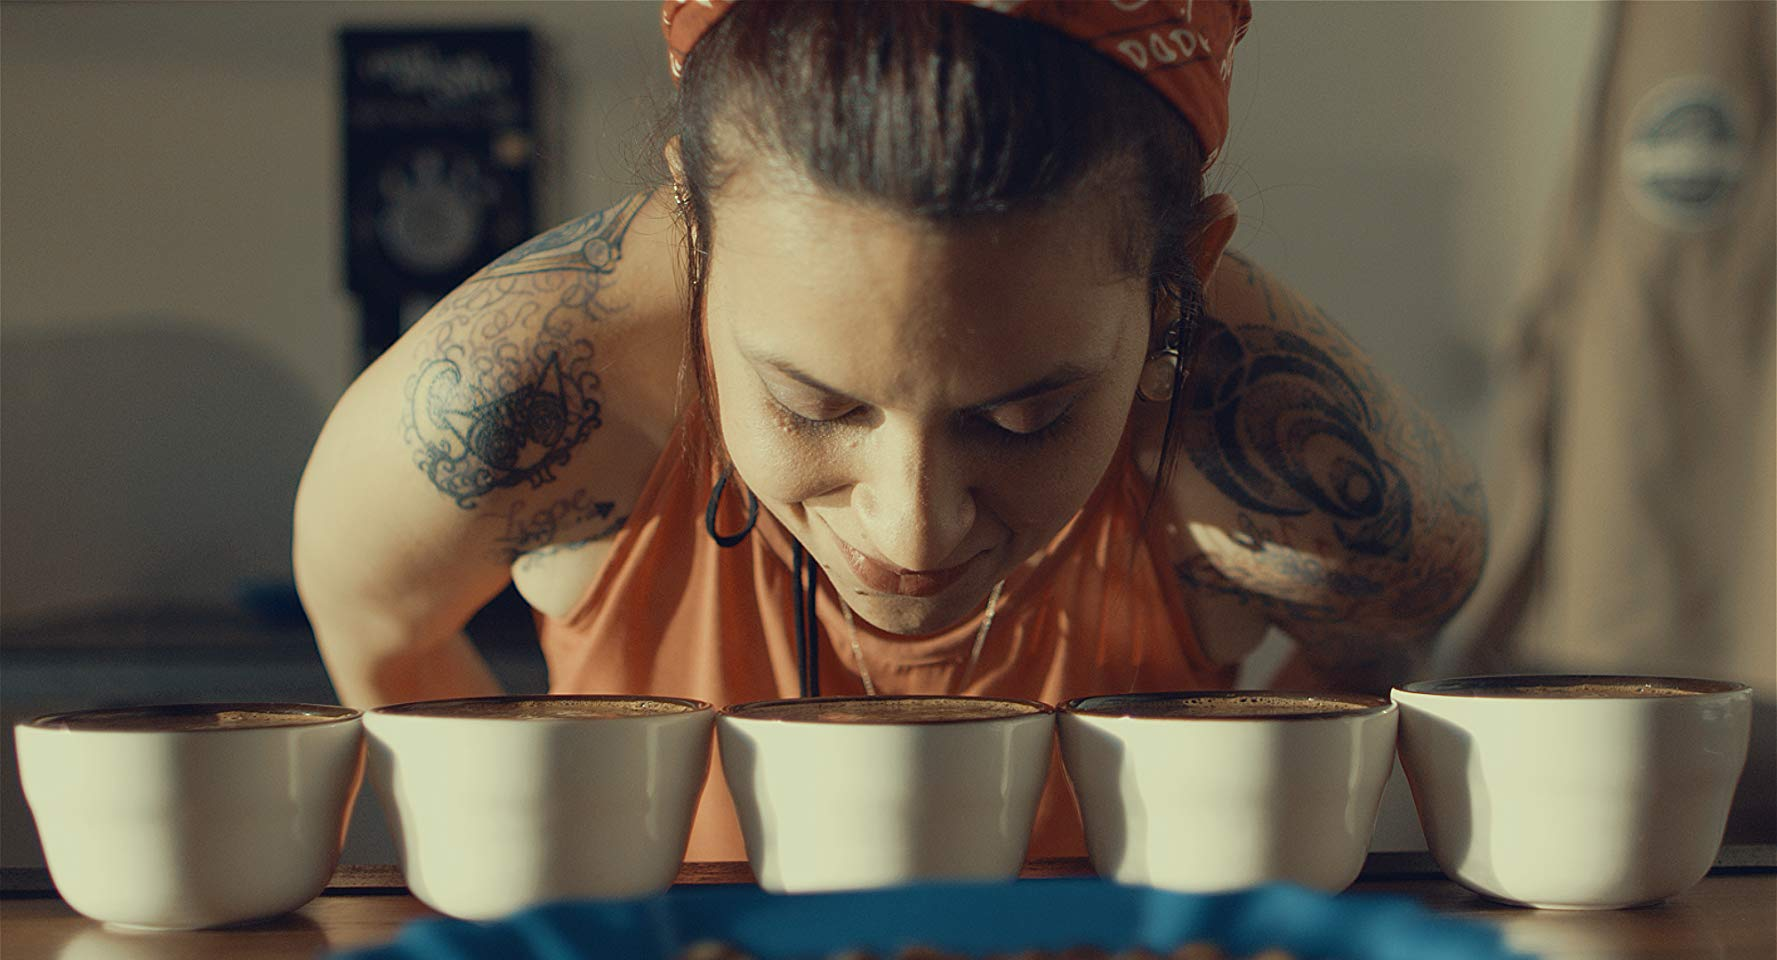 REVIEW: 'Café Con Sabor a Mi Tierra' Is a Gorgeously Shot Drama About Honduran Coffee Growers